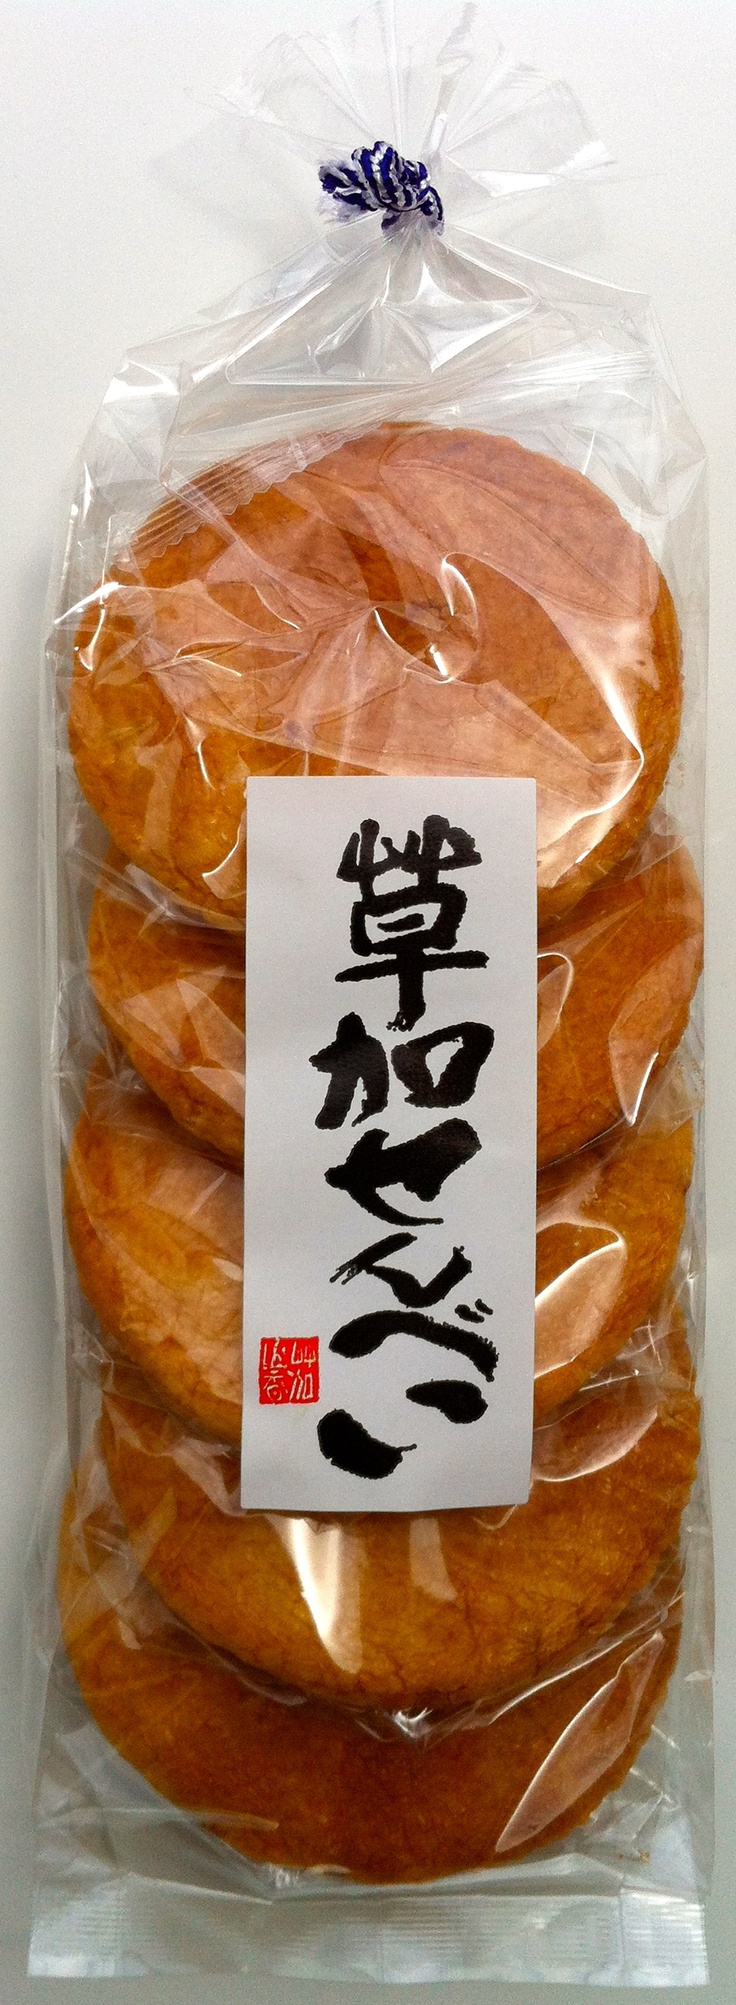 Soka-senbei( Japanese rice crackers ) MIKIYA Co.,Ltd.